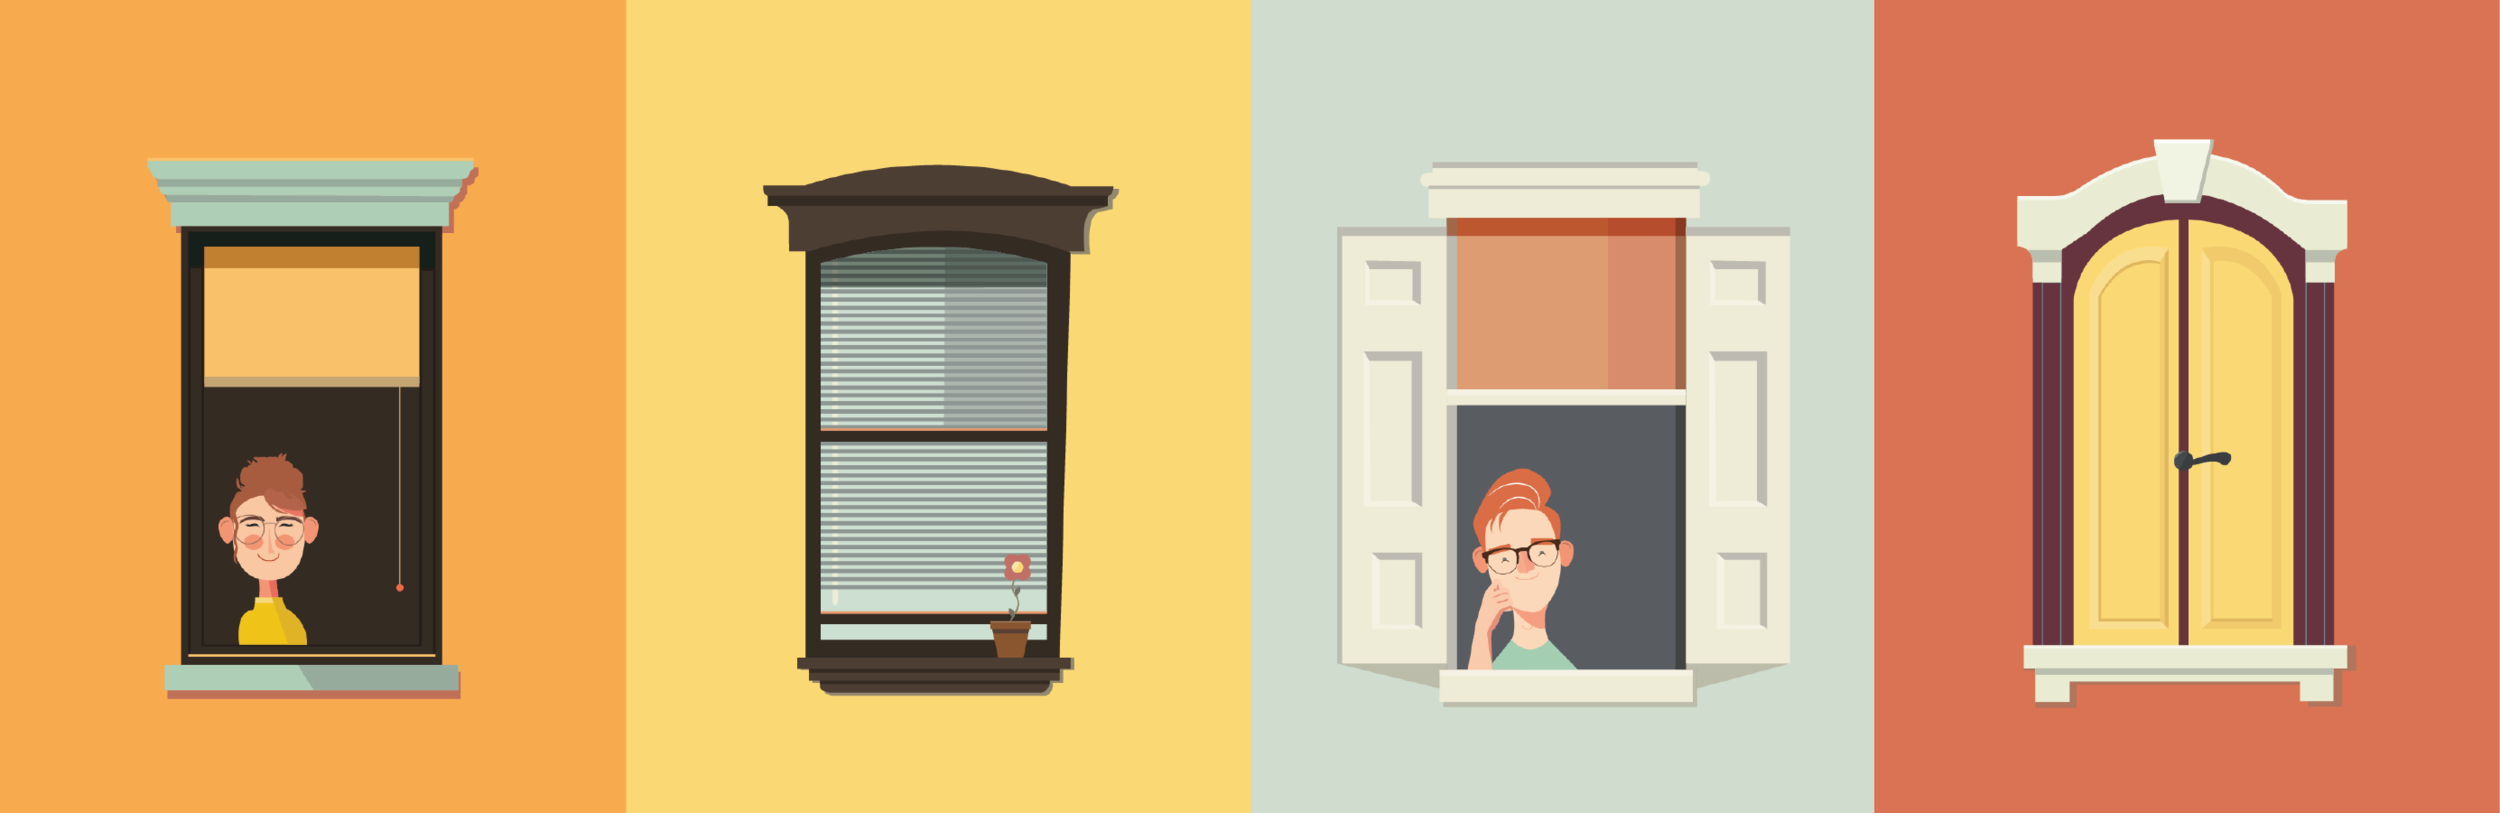 Character and window design.